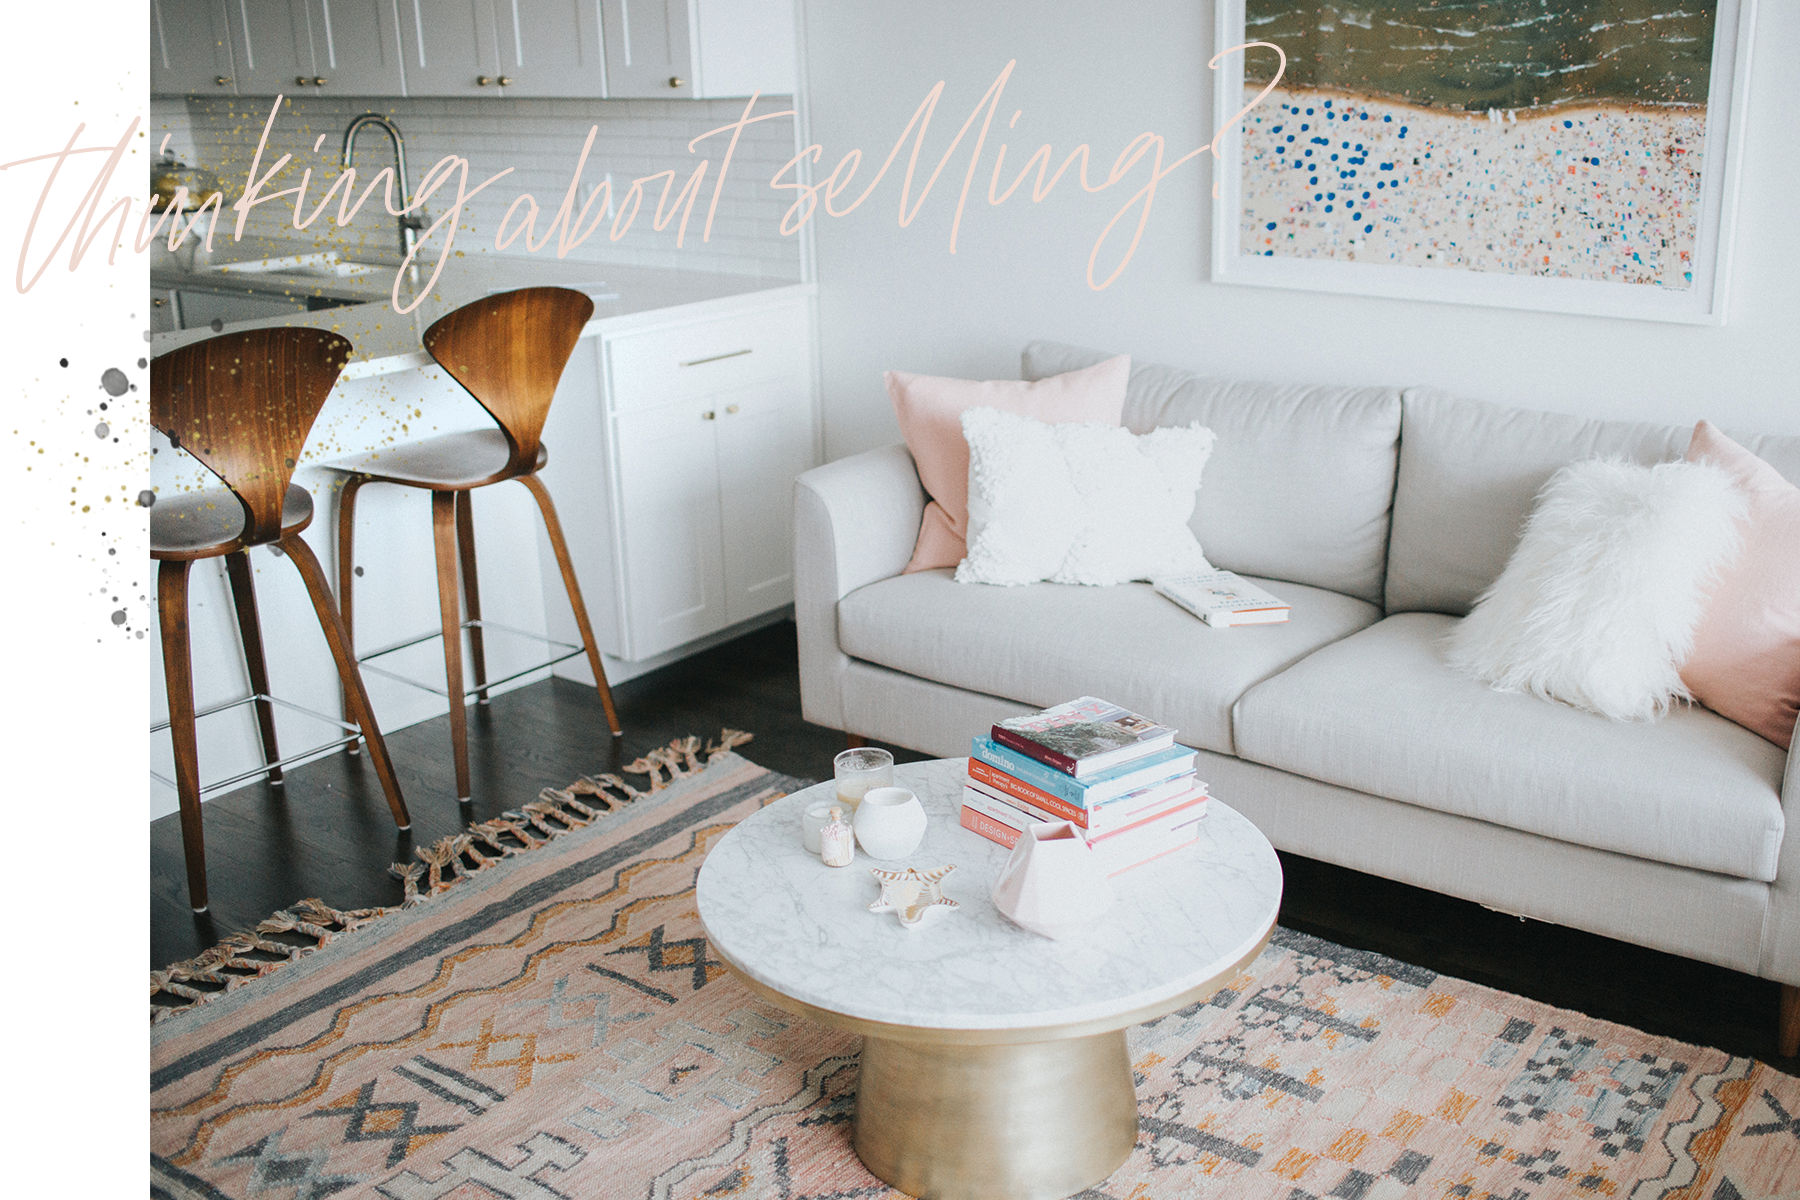 When you bought your condo a few years ago, it was perfect. - These days, it feels like you're constantly tripping on toys, desperate for more space and dreaming of your forever home. Sound familiar? If so, my seamless selling approach gets you where you want to go.As with buying, the selling process constitutes five straightforward steps.